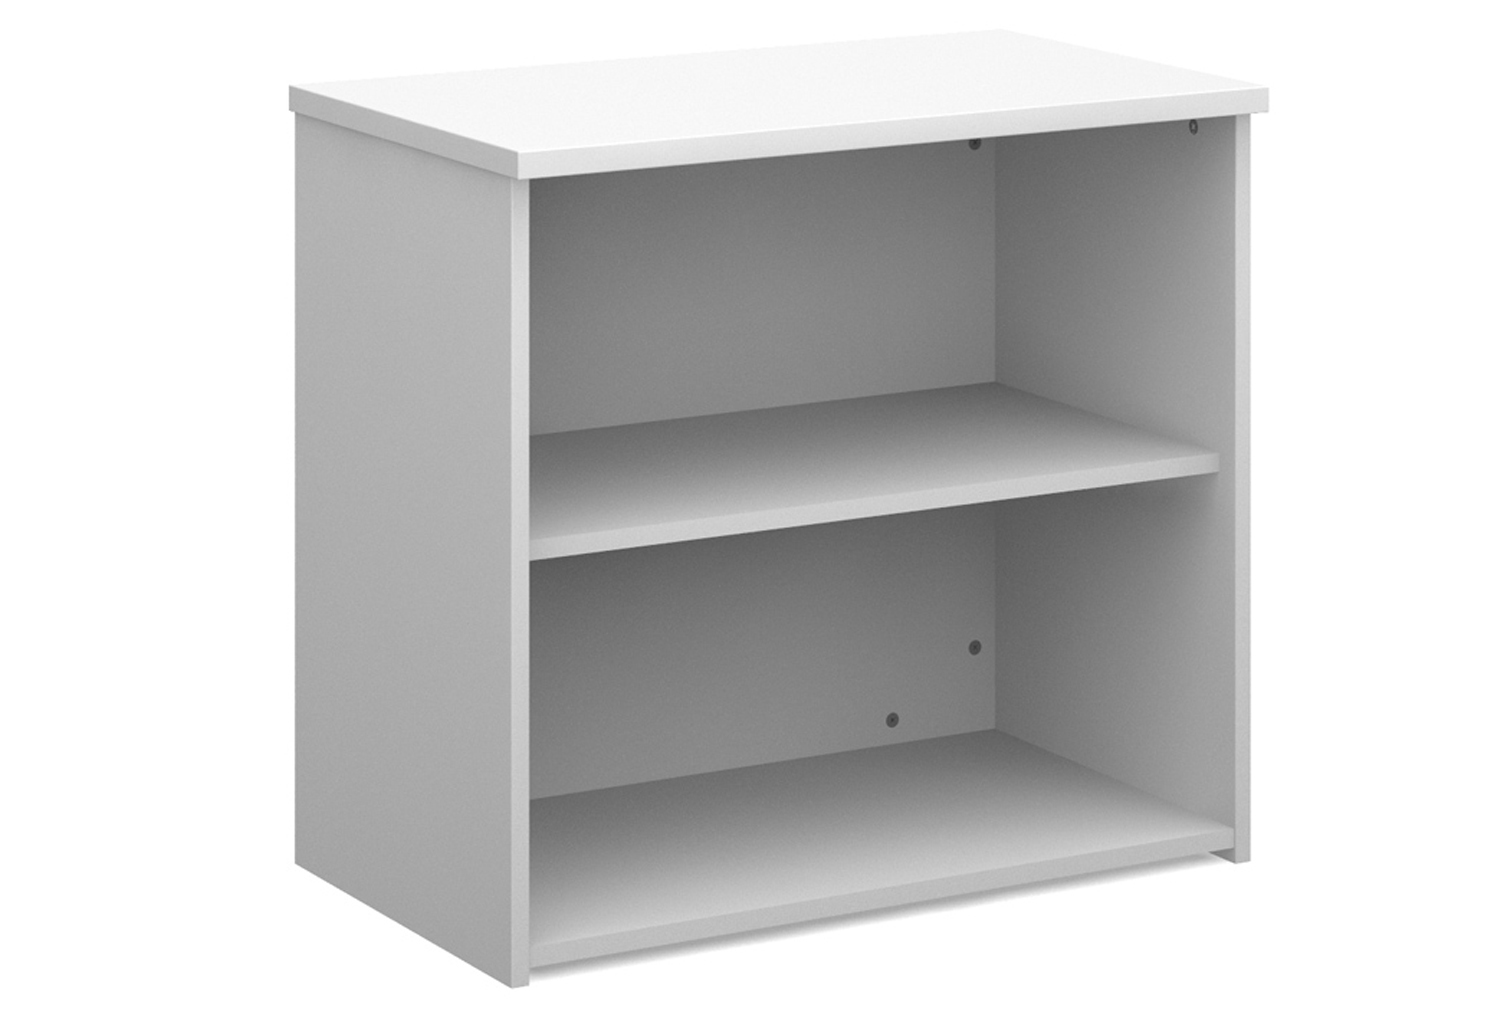 Image of Value Line Bookcases, White